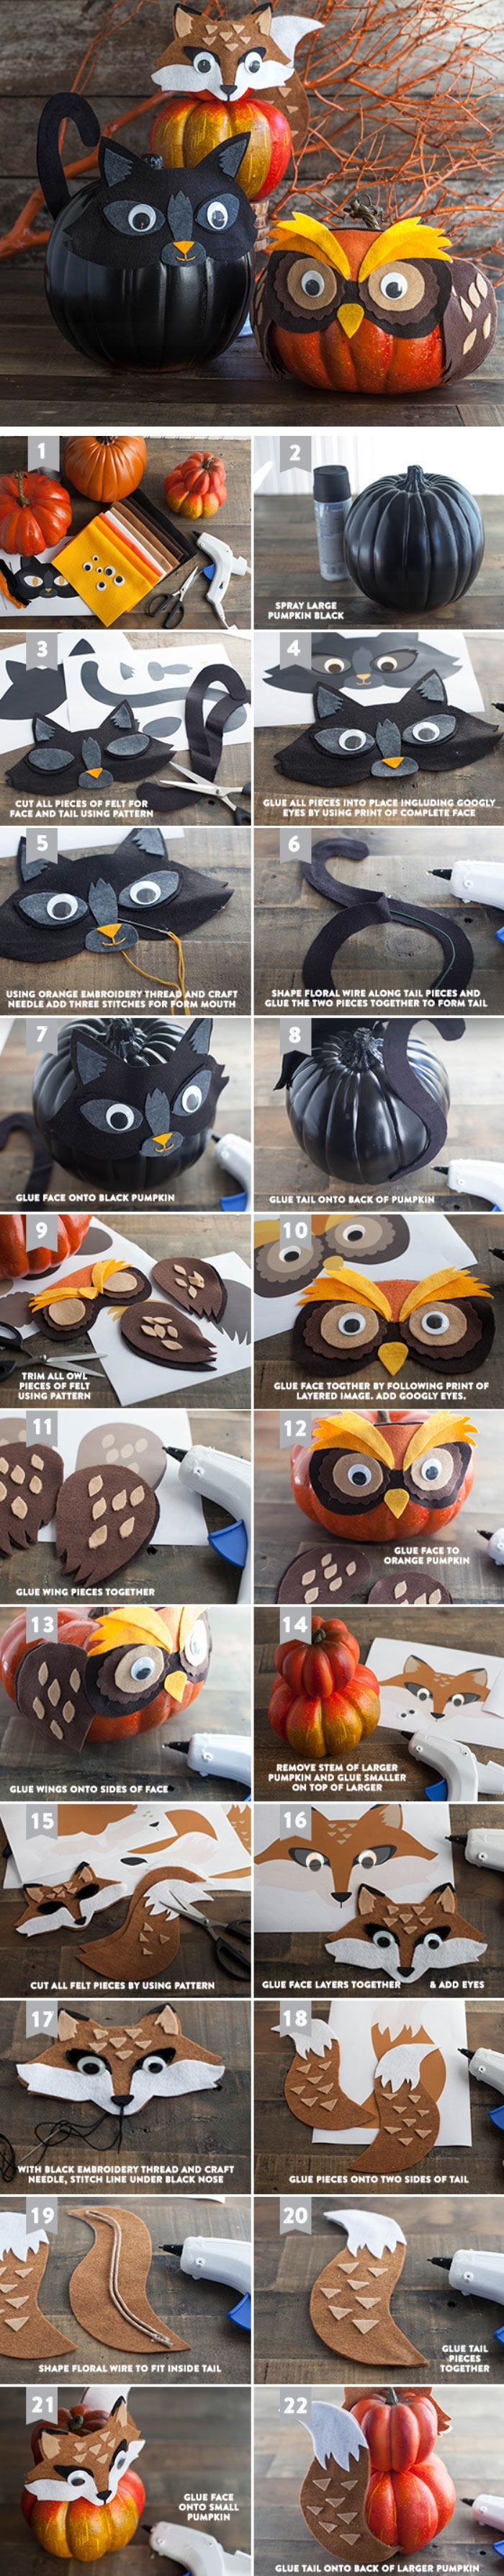 Felt Costumes for Your Halloween Pumpkins   Click Pic for 20 DIY Halloween Decorations for Kids to Make   Cheap and Easy Halloween Decorations on a Budget